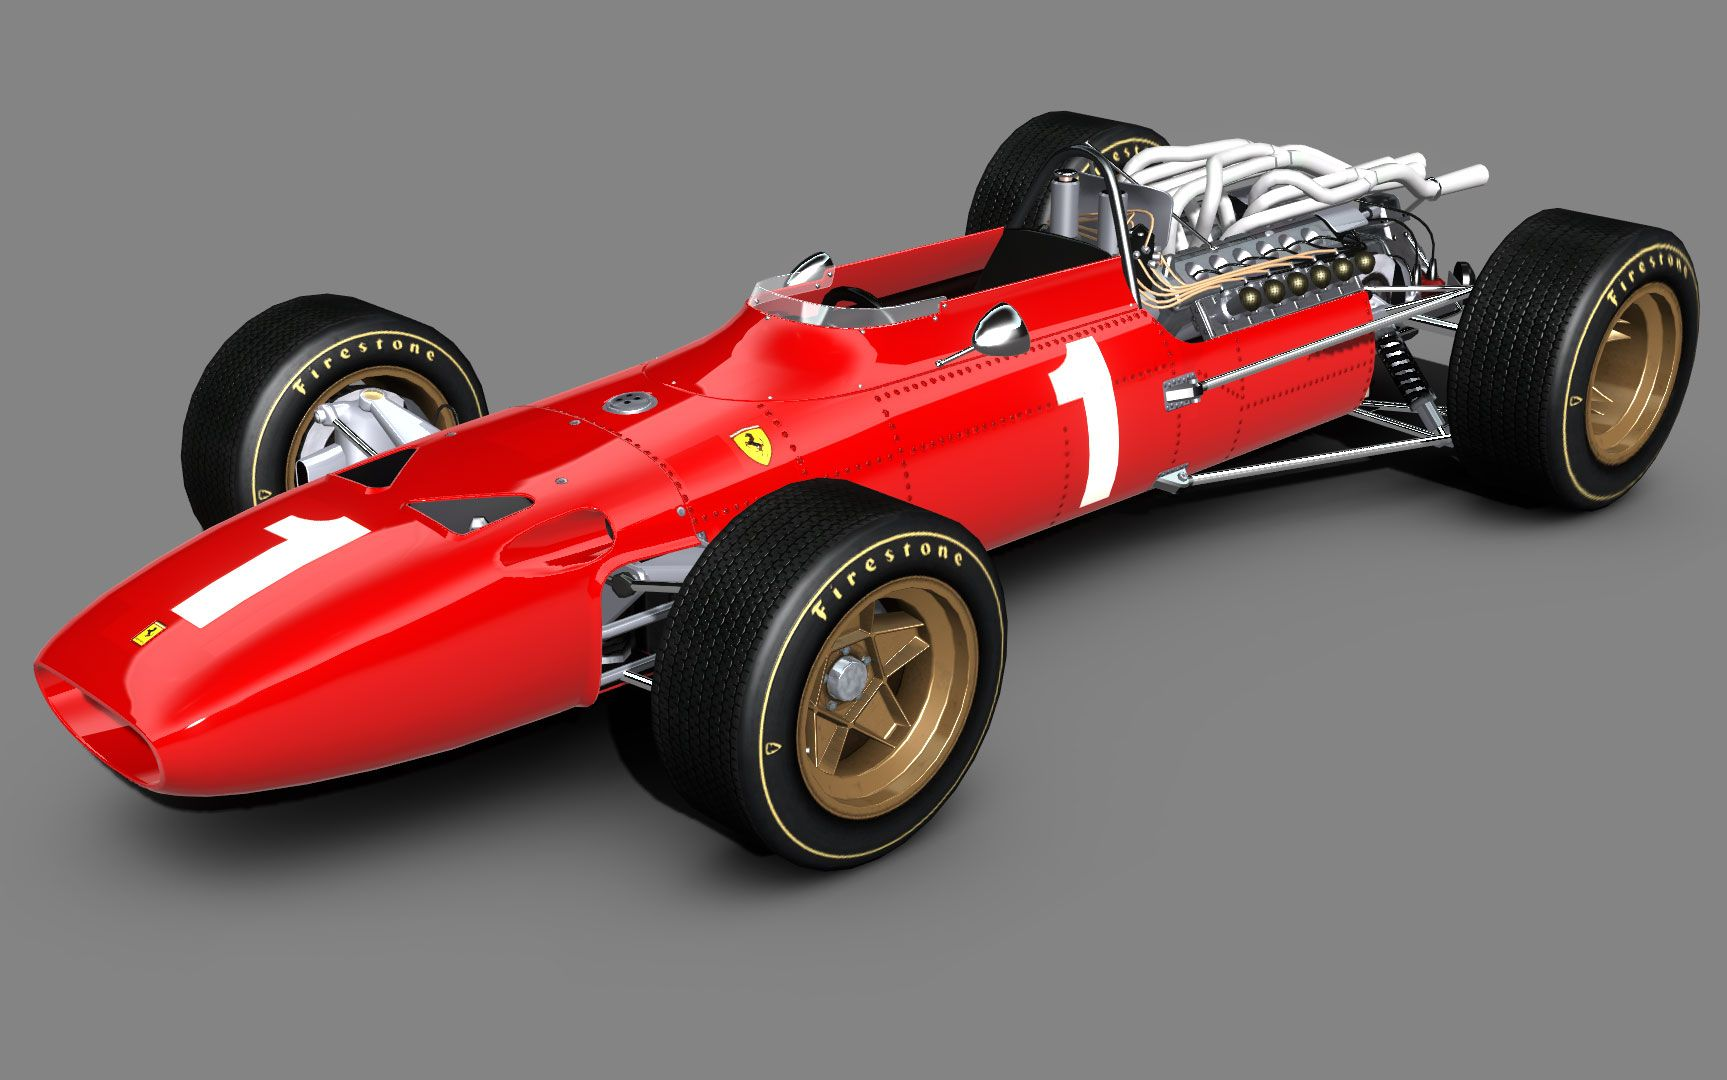 Test Drive Ferrari Racing Legends Vintage Race Car Photo 7